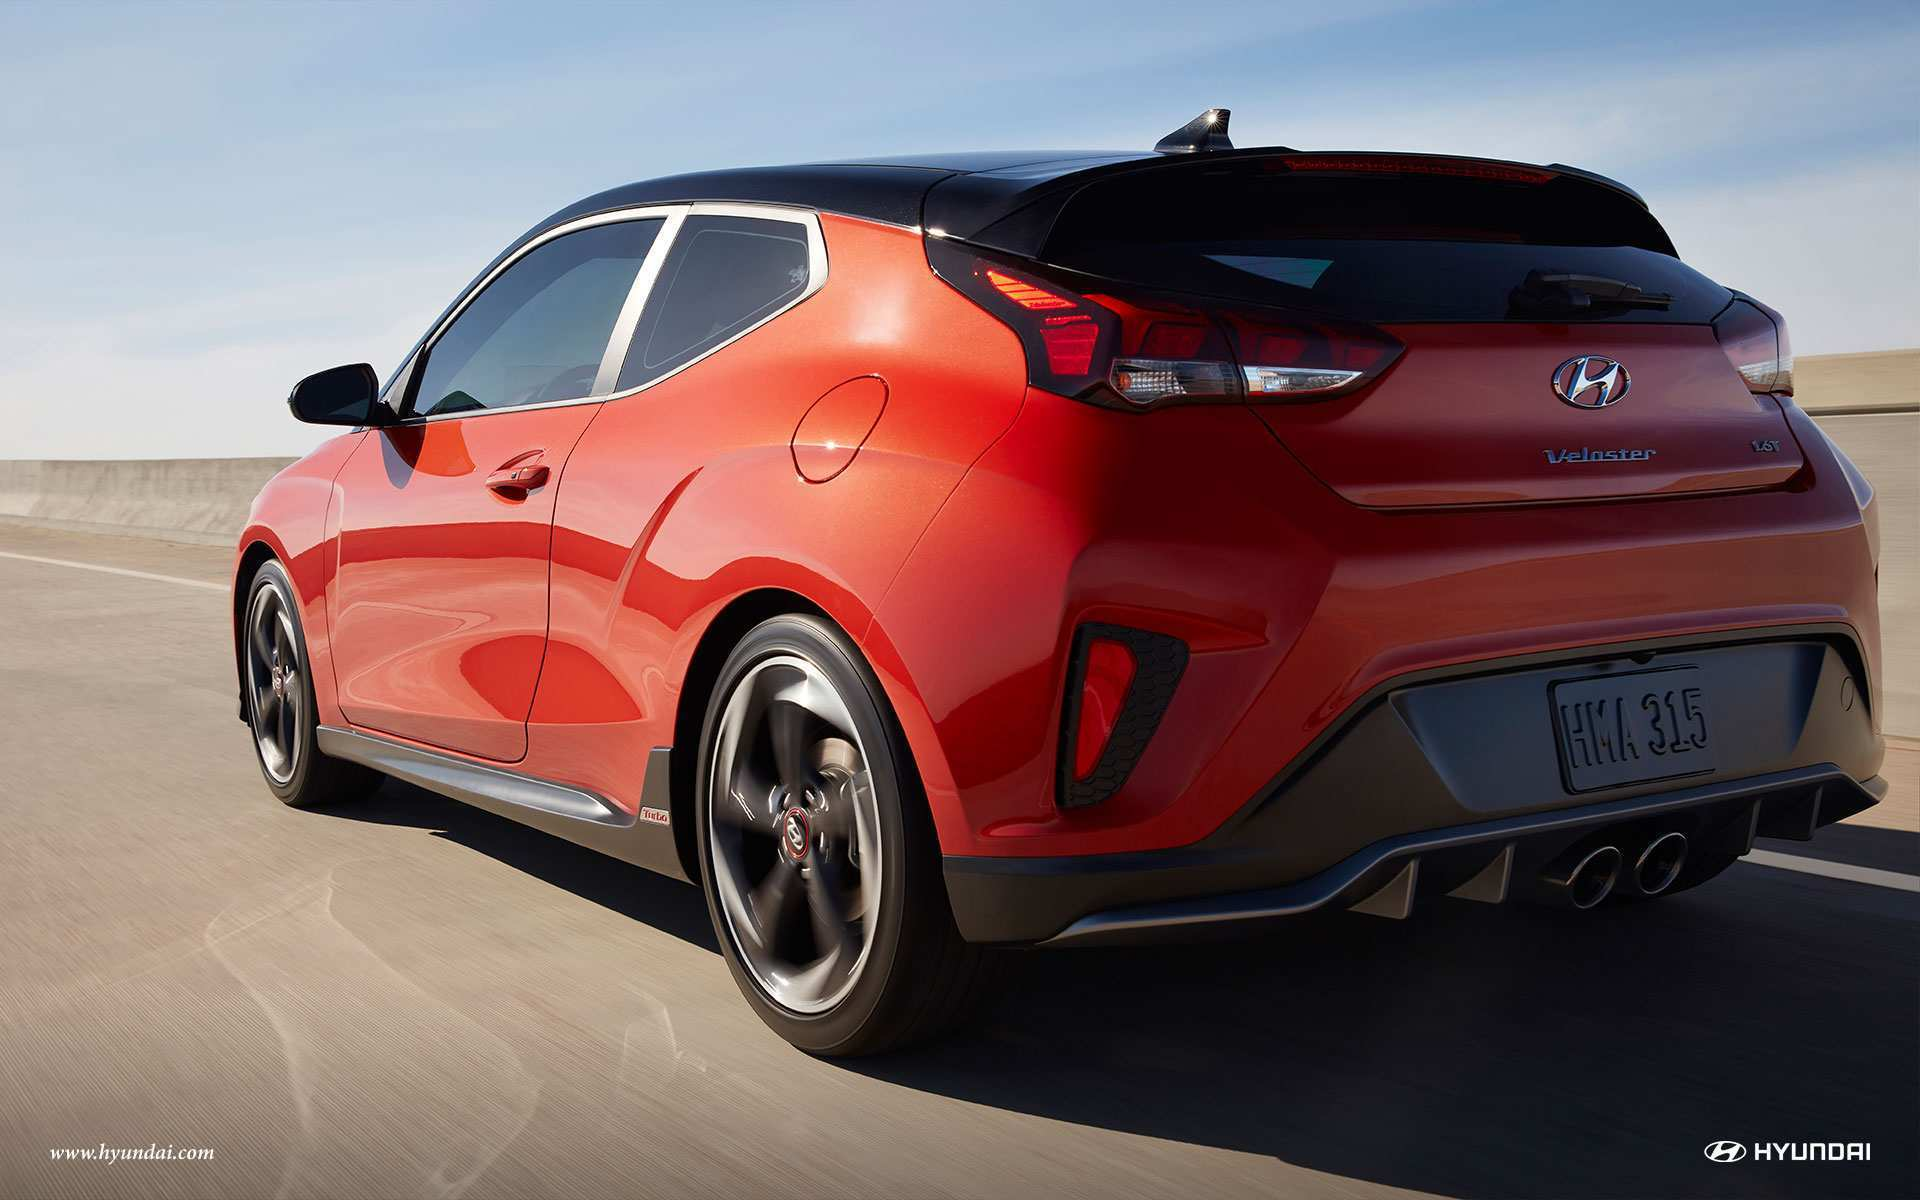 65 Concept of 2019 Hyundai Veloster Turbo Engine with 2019 Hyundai Veloster Turbo